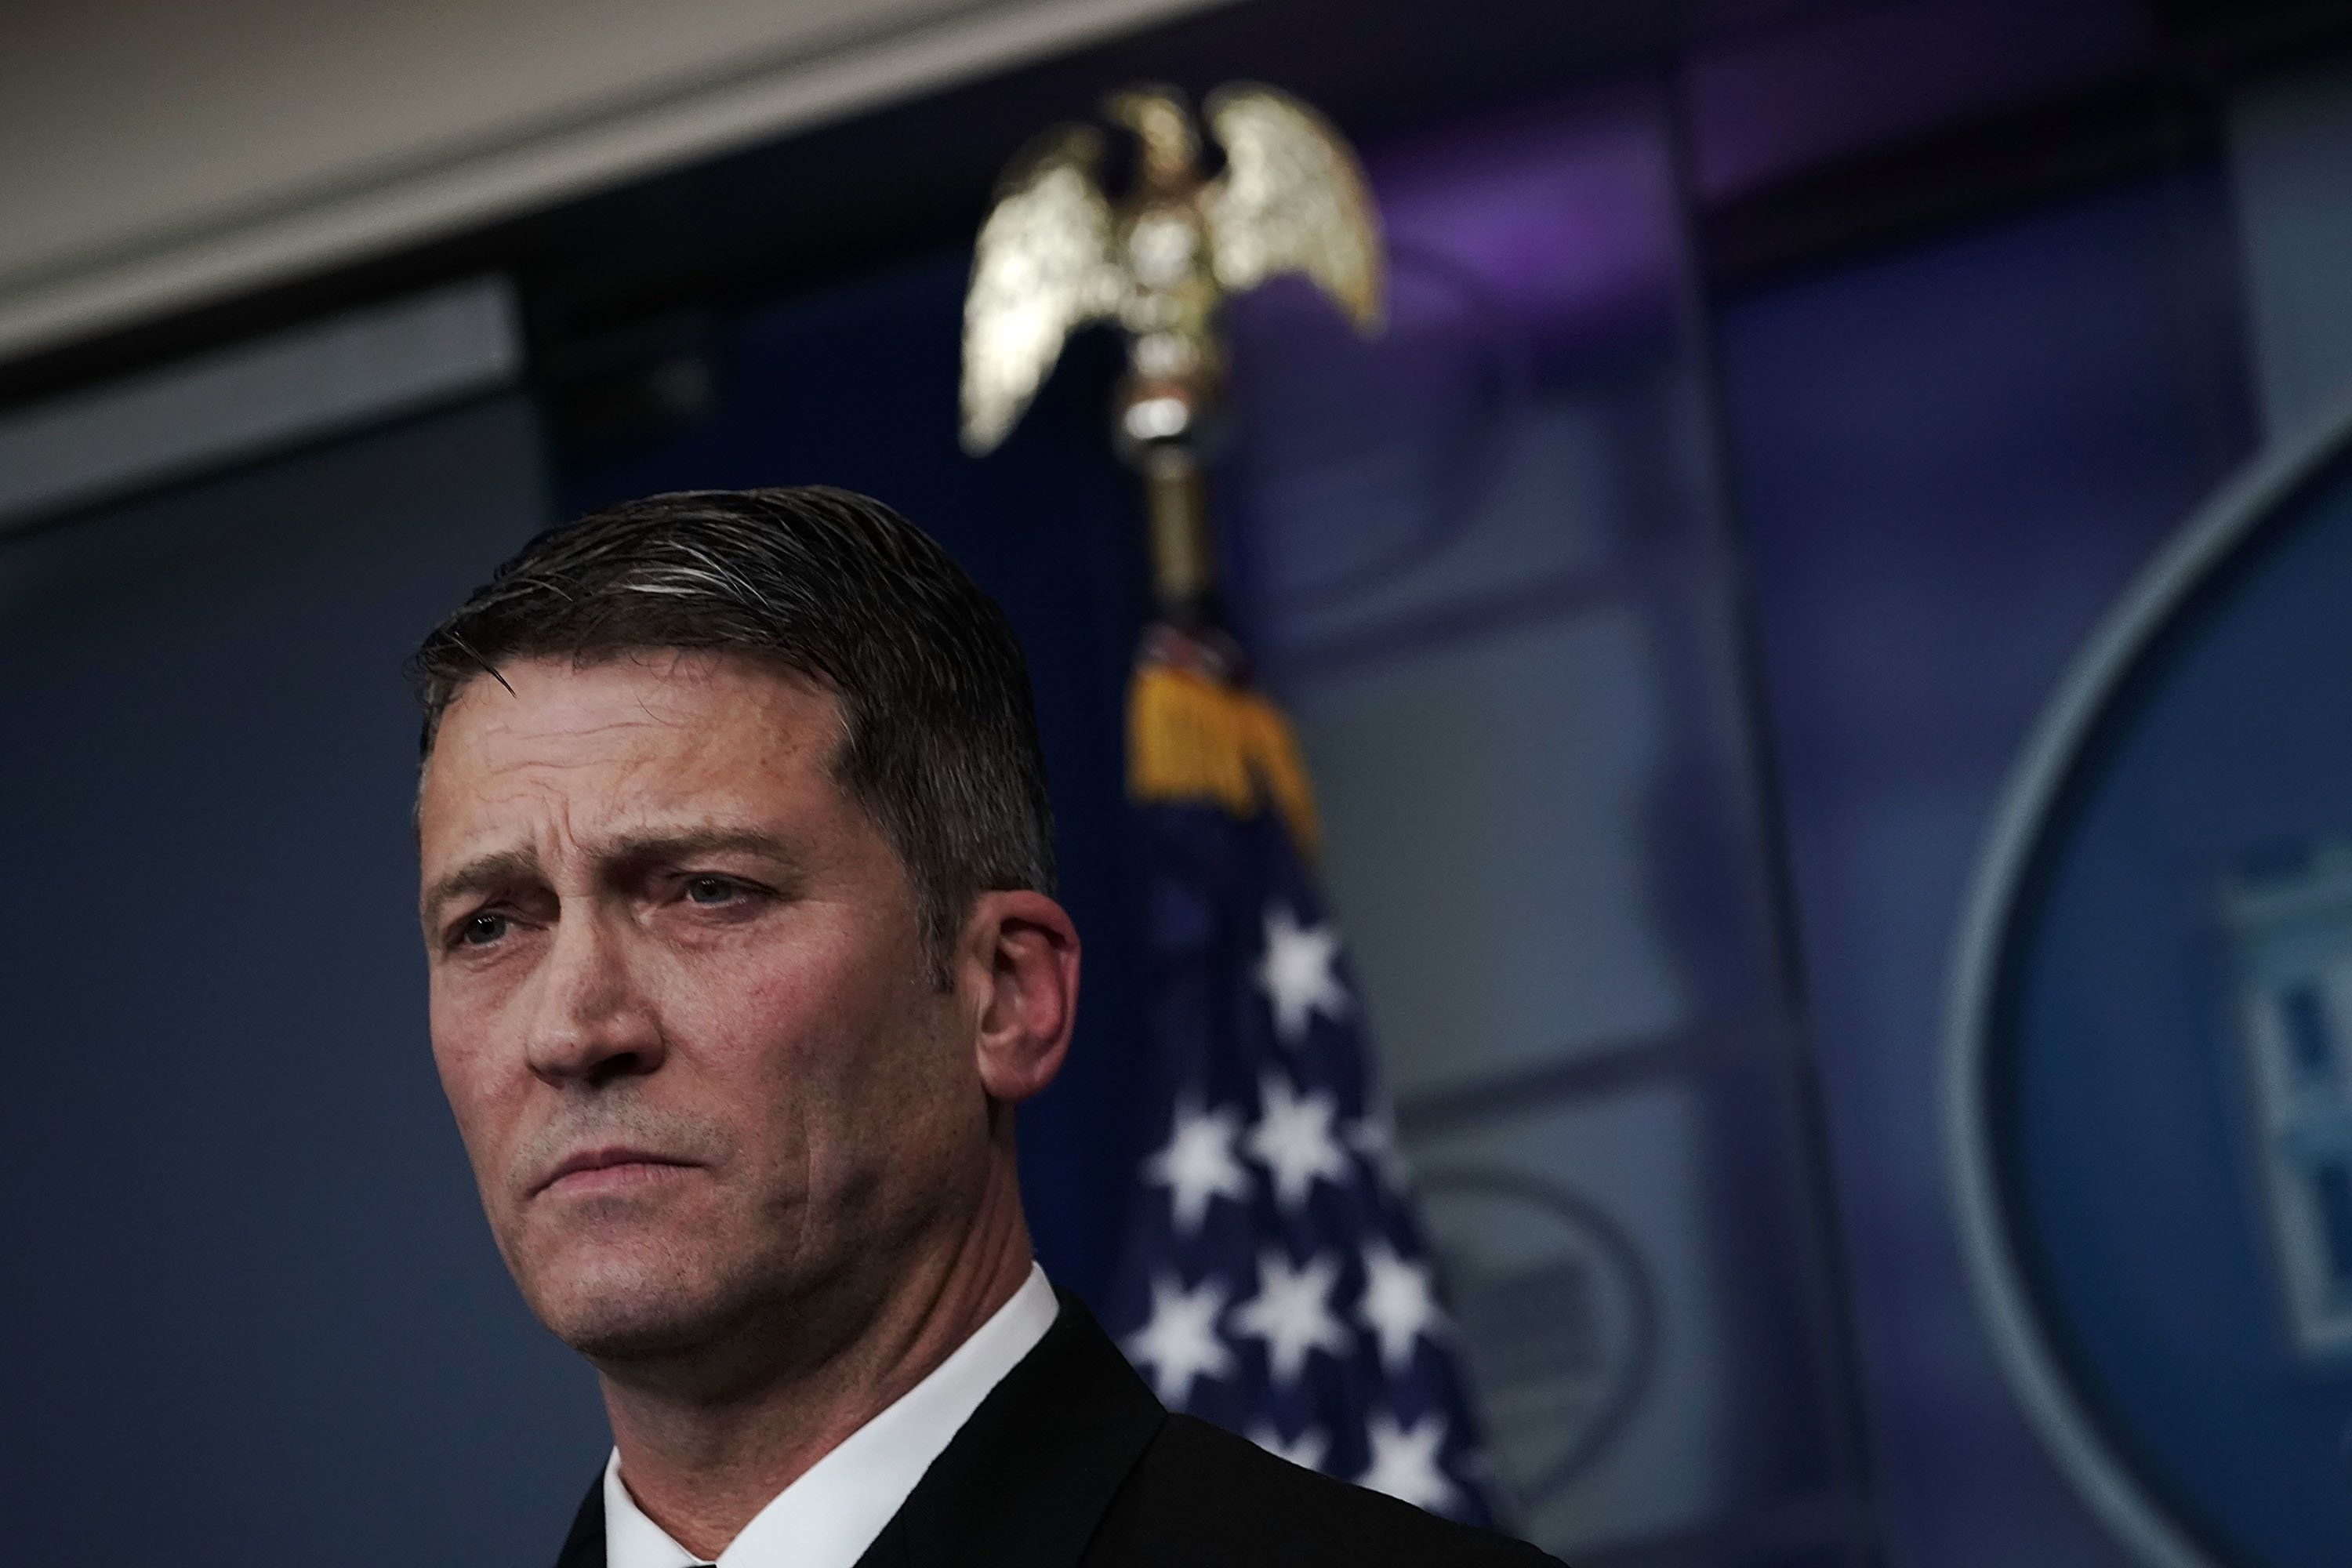 WASHINGTON, DC - JANUARY 16:  Physician to U.S. President Donald Trump Dr. Ronny Jackson listens during the daily White House press briefing at the James Brady Press Briefing Room of the White House January 16, 2018 in Washington, DC. Dr. Jackson discussed the details of President TrumpÕs physical check-up from last week.  (Photo by Alex Wong/Getty Images)